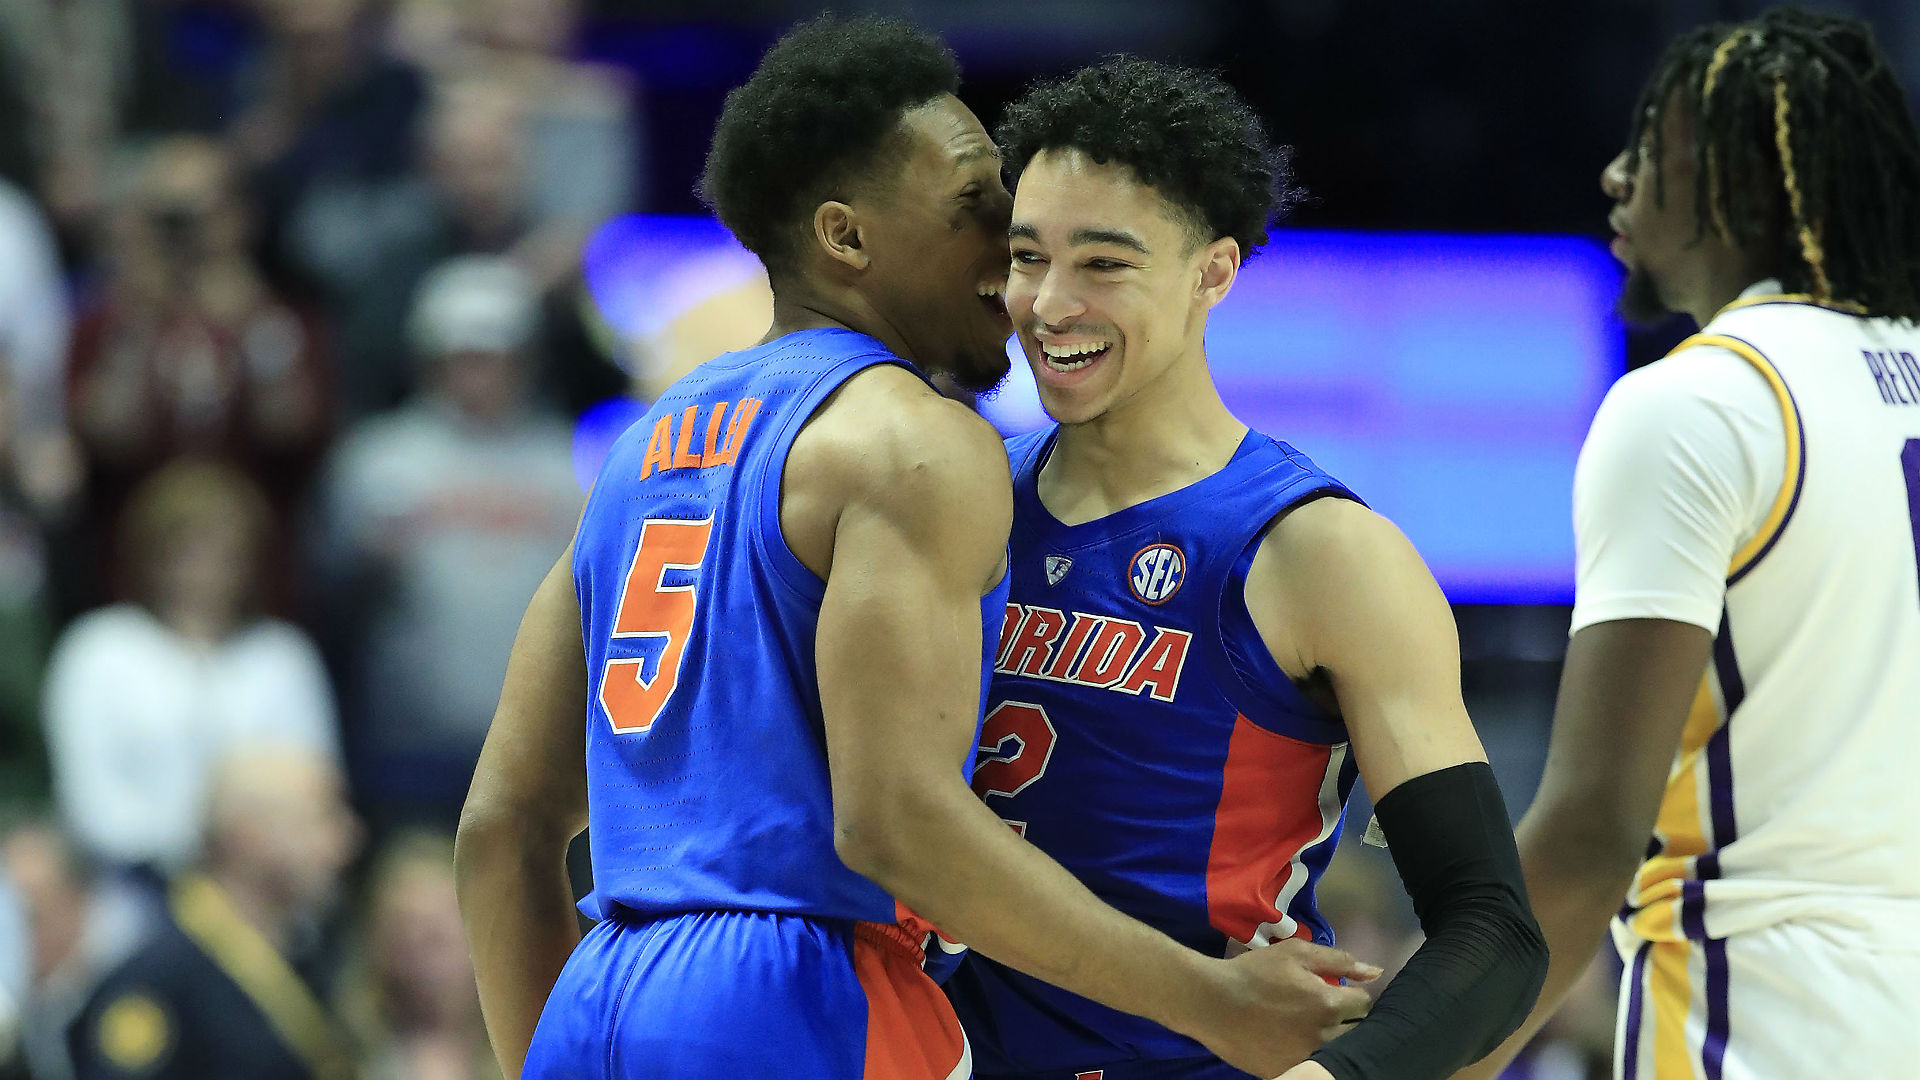 March Madness 2019: 3 Takeaways From Florida's SEC